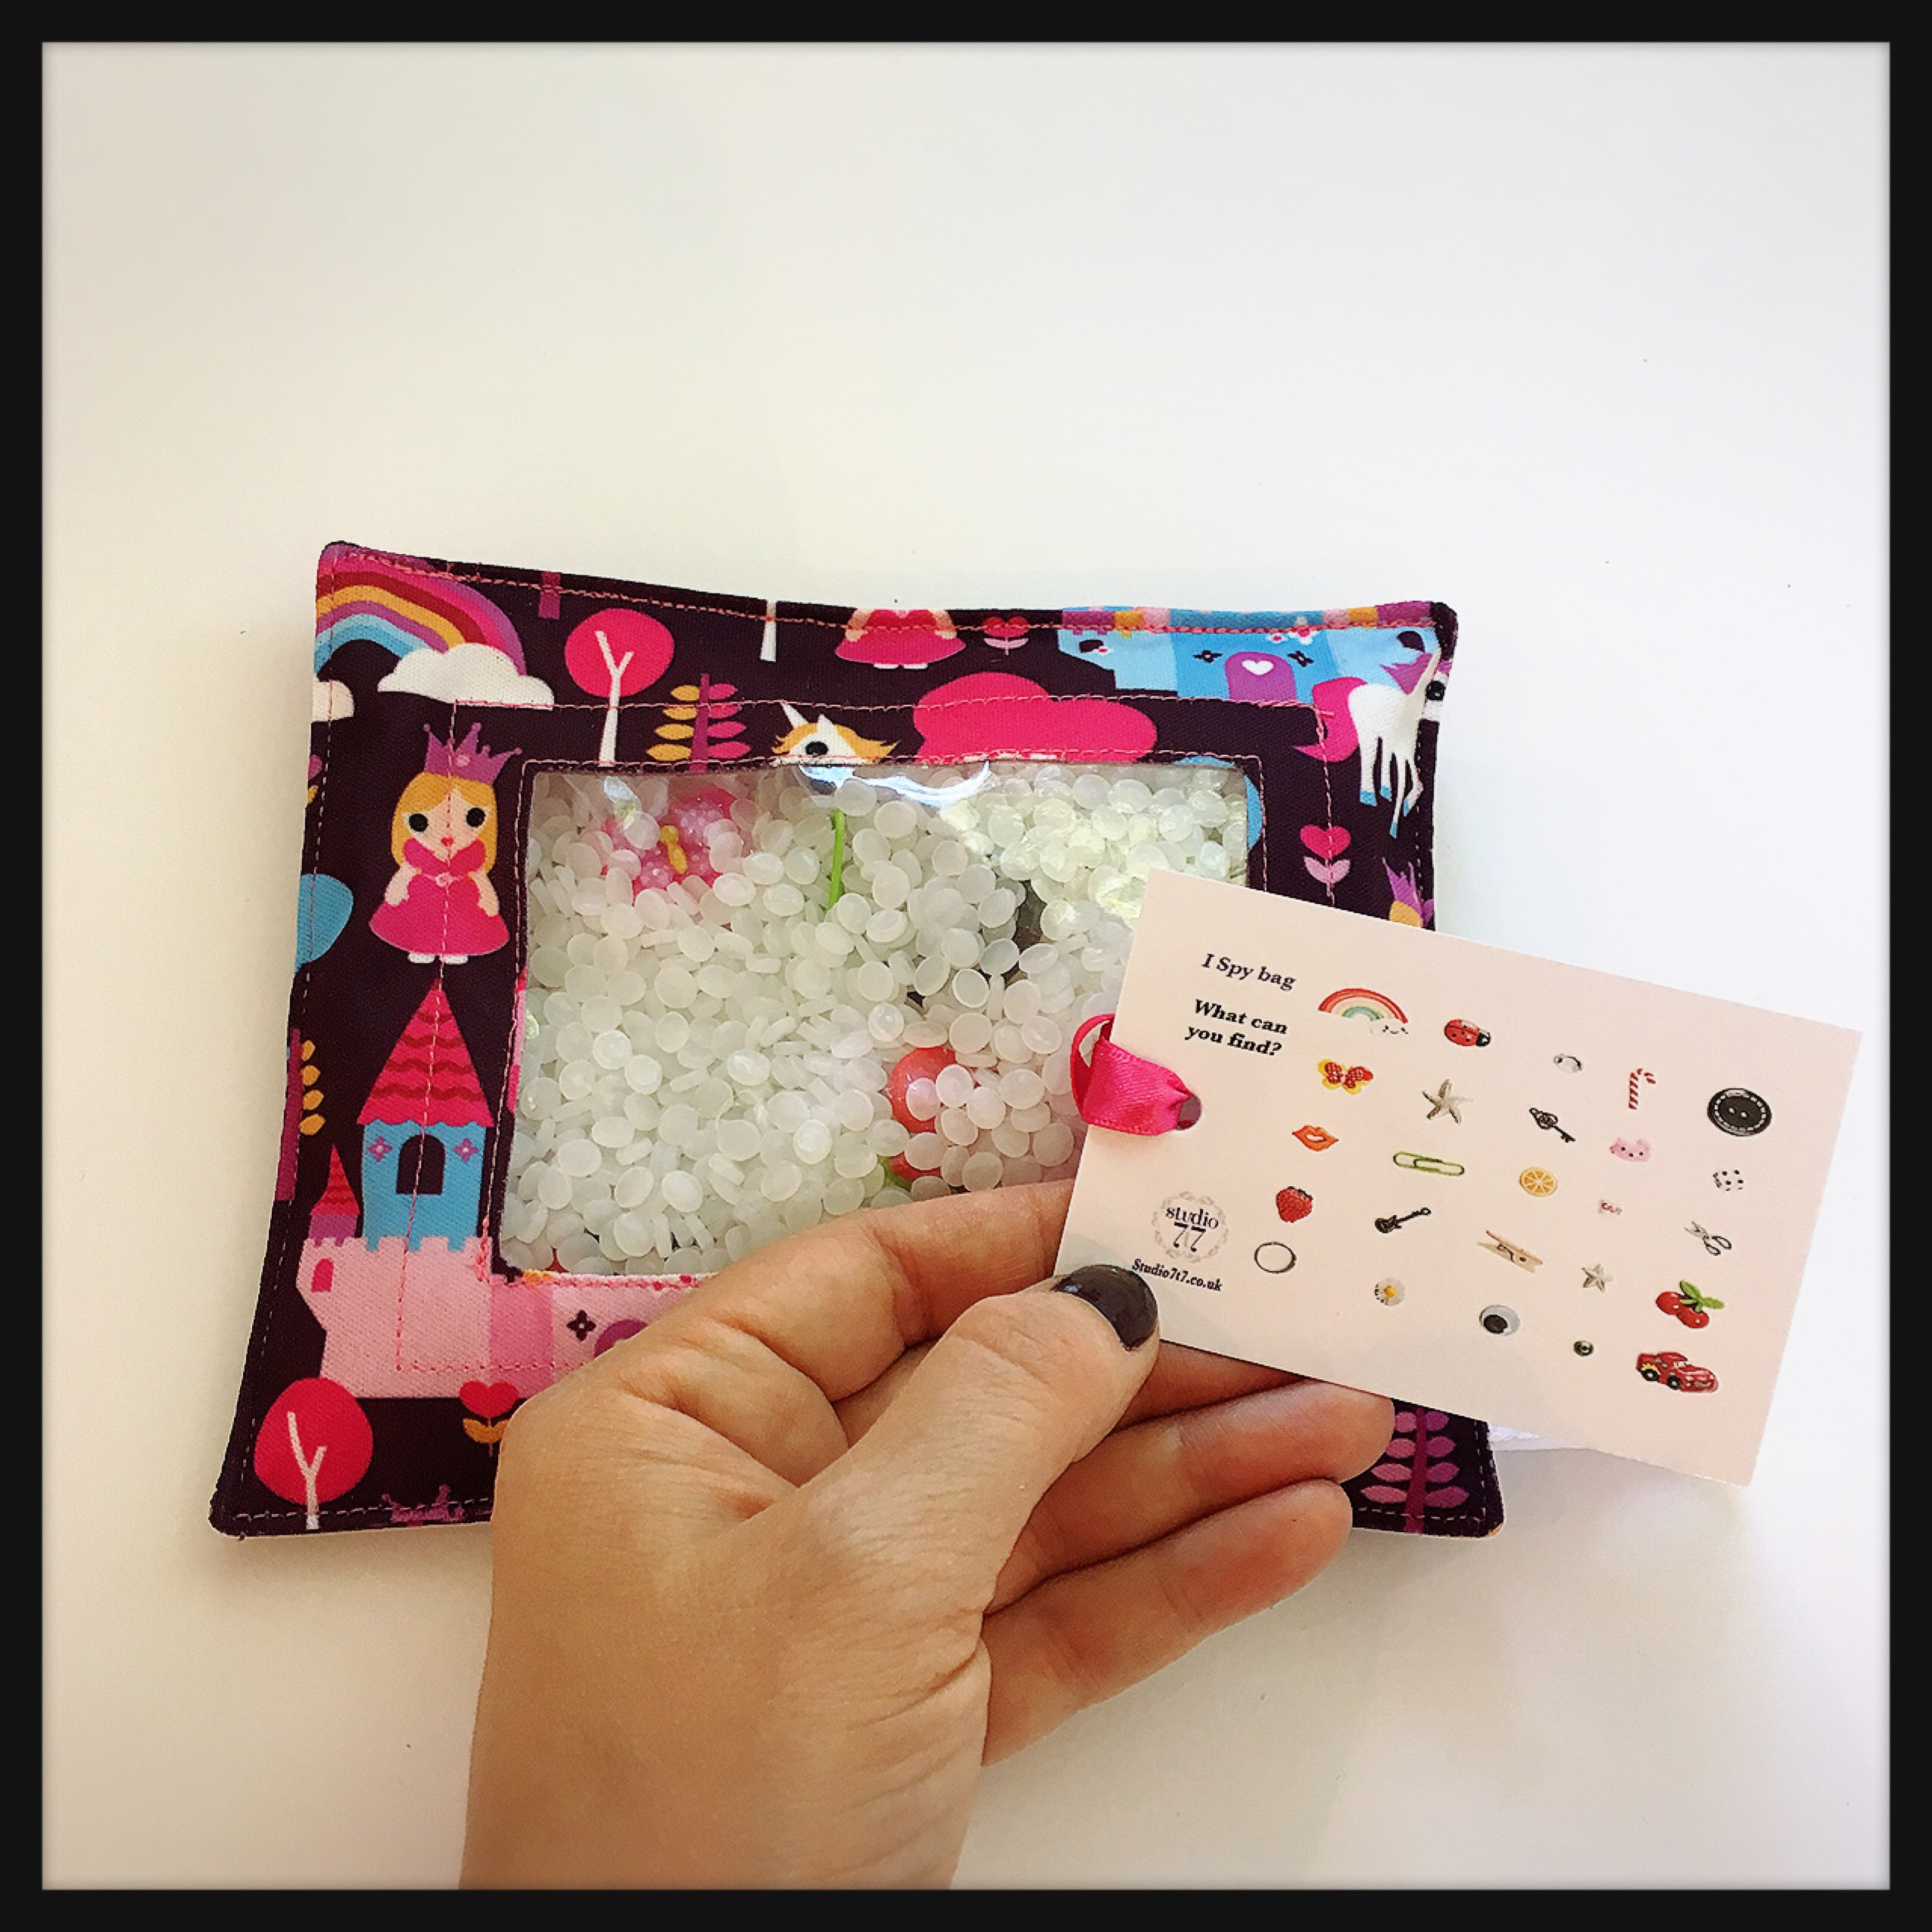 Replacement card for I spy bag